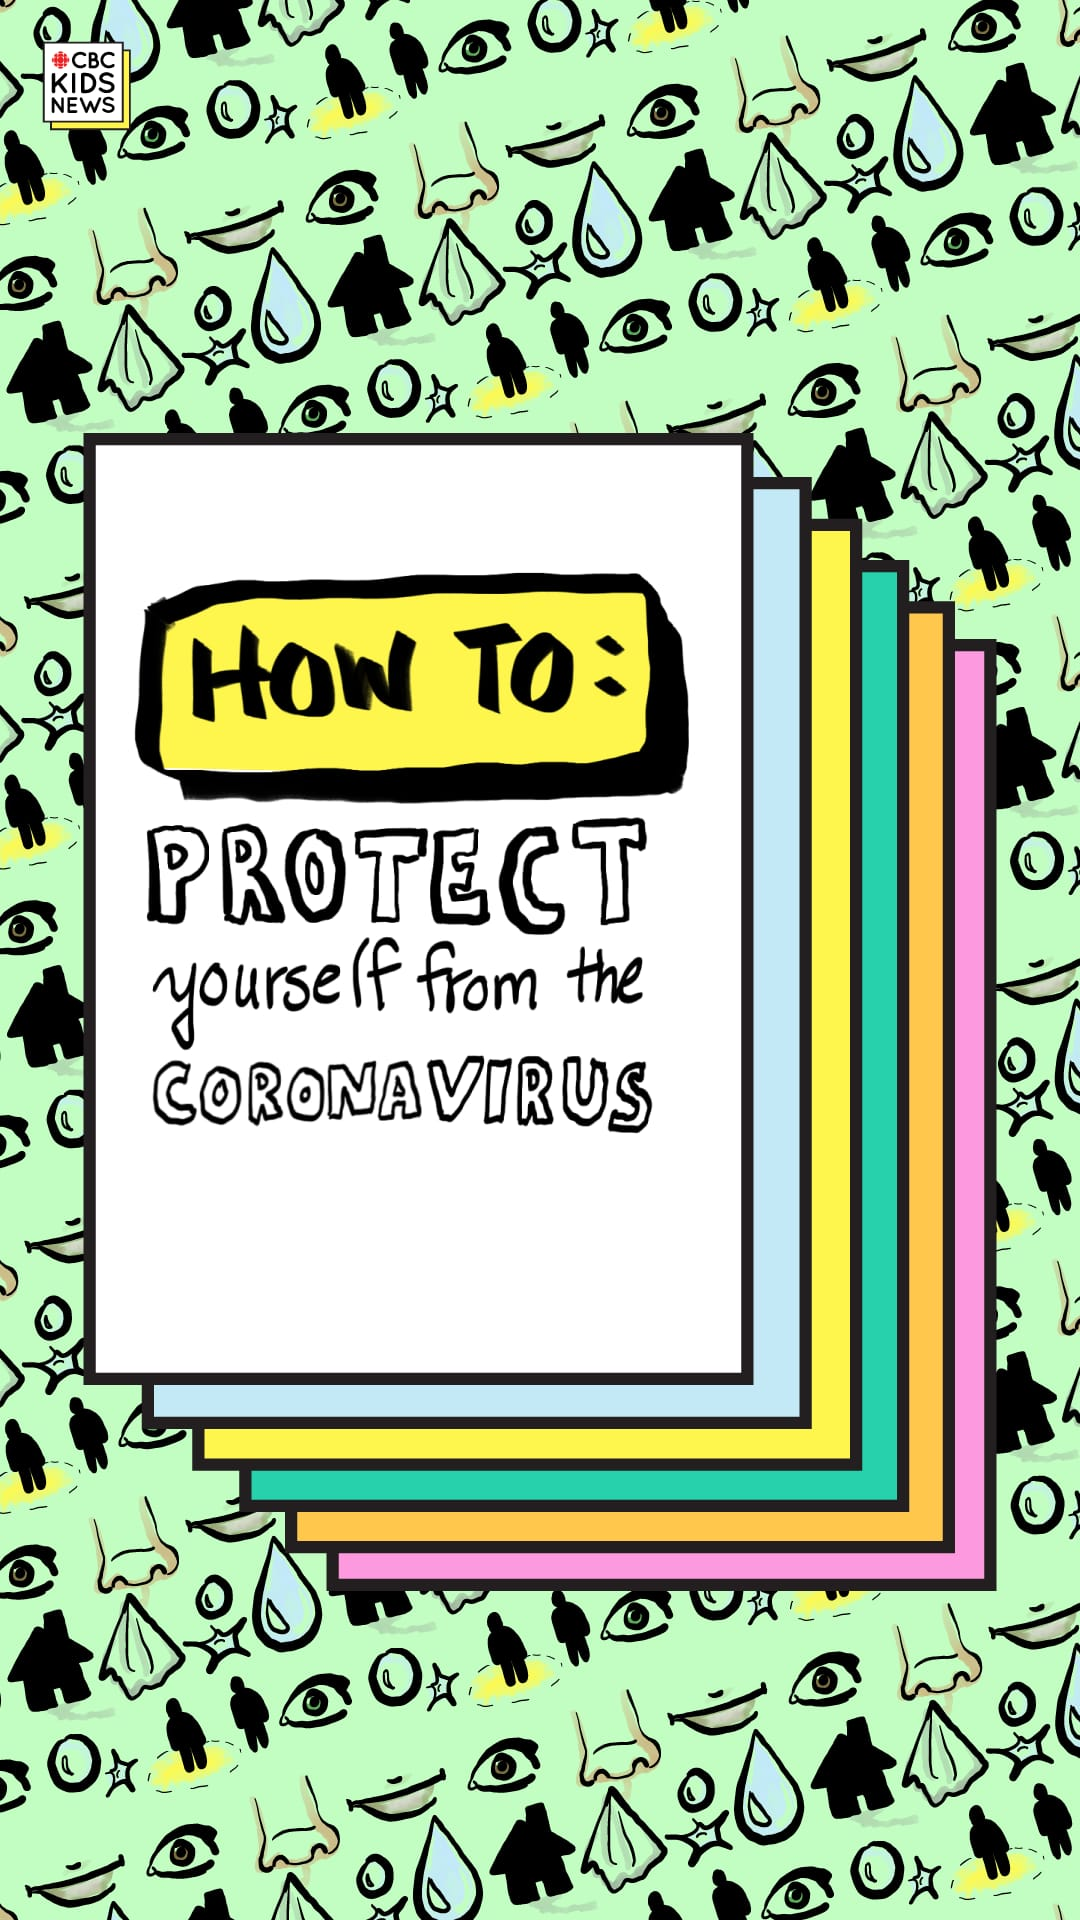 HOW TO: Protect yourself from coronavirus